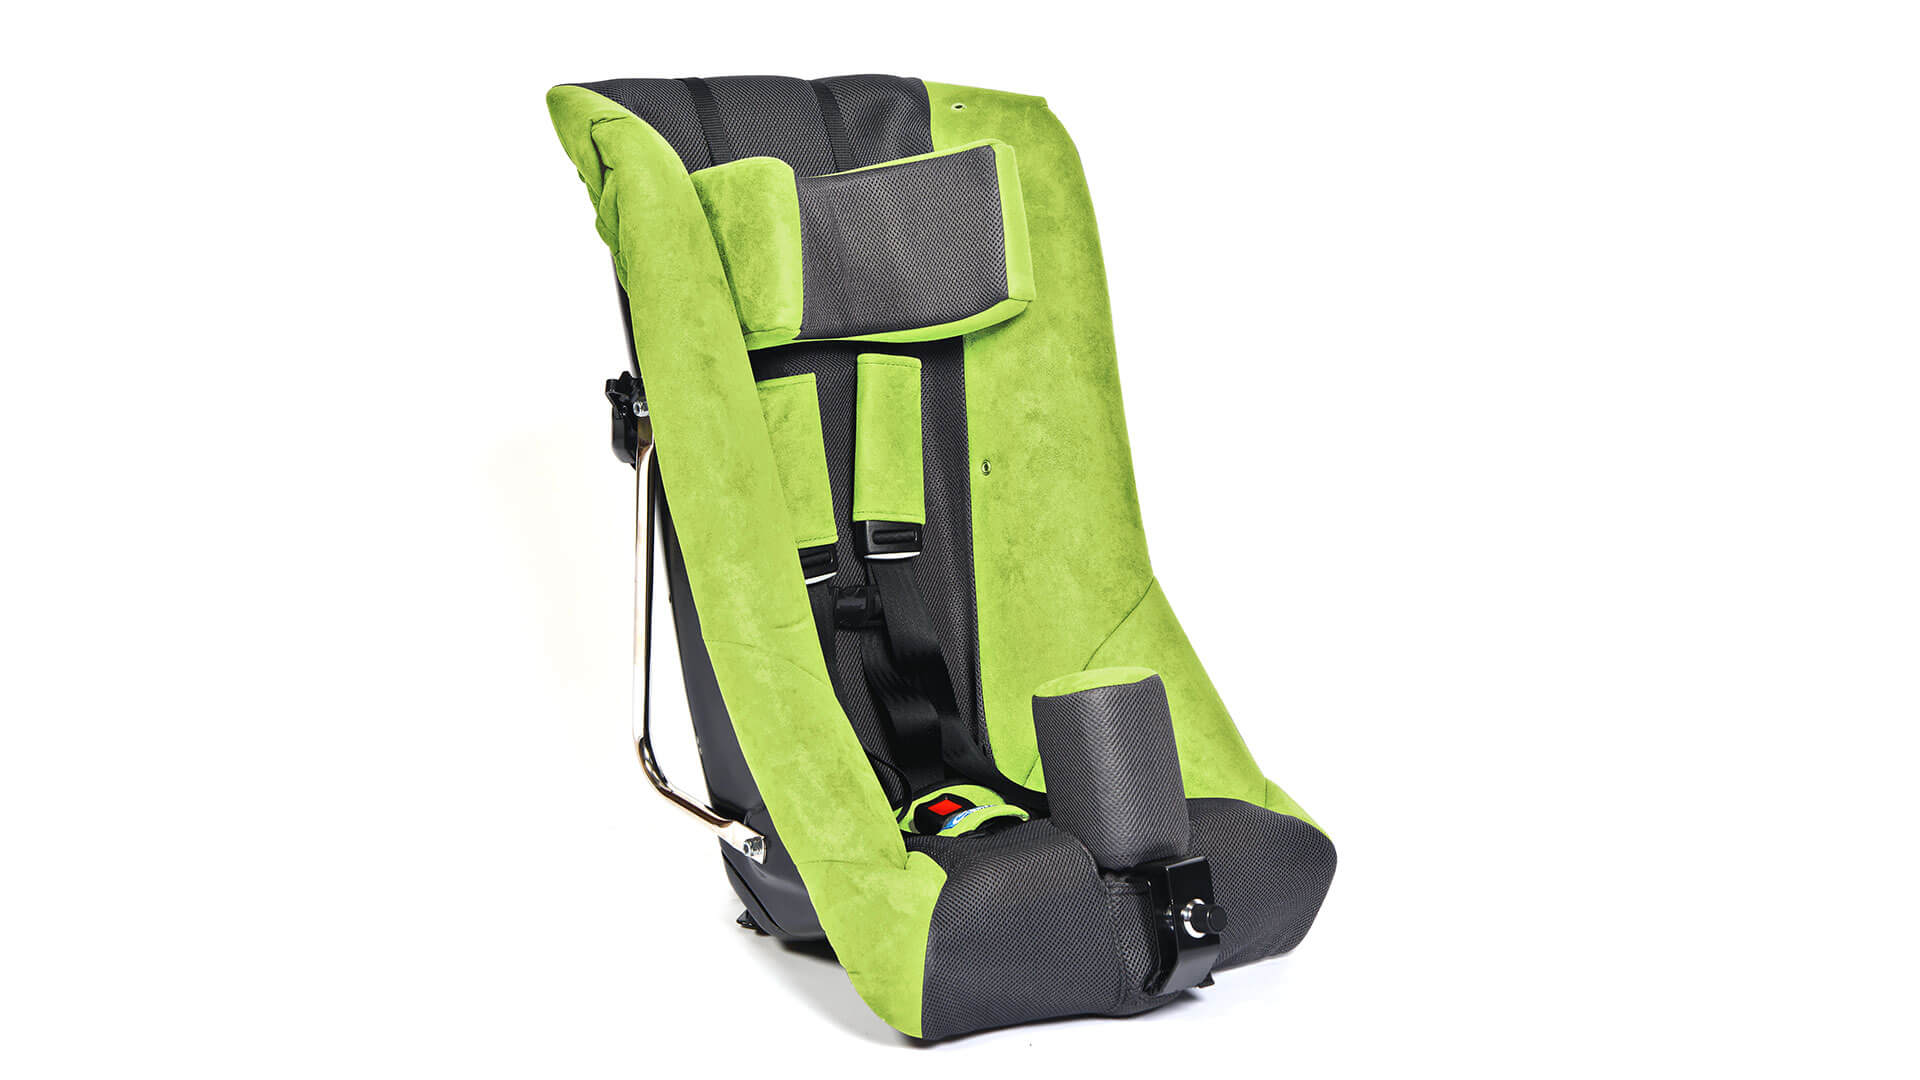 IPS Car Seat (2000 Series) - Inspired by Drive